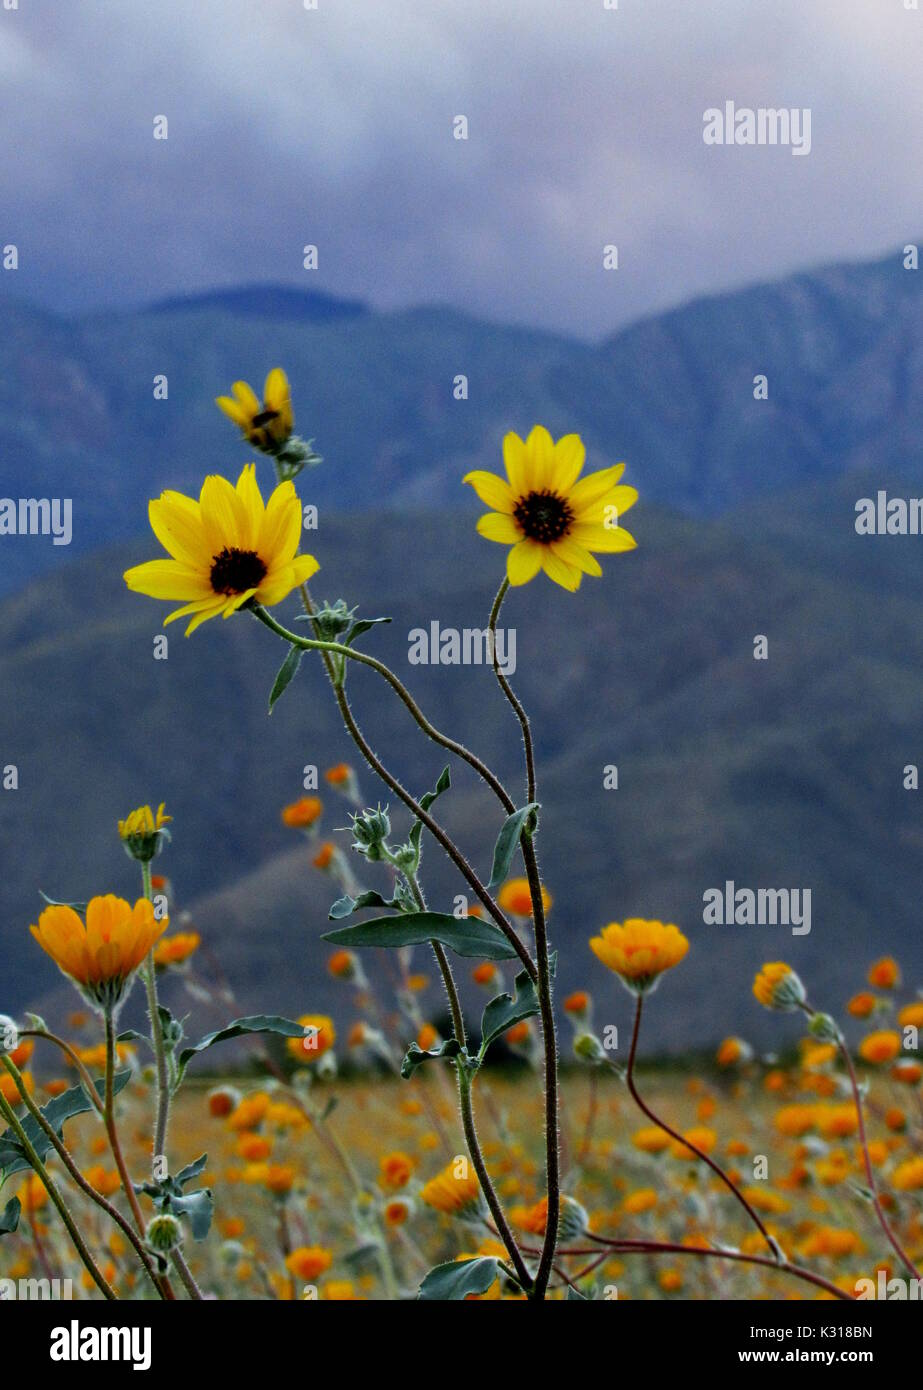 Sunflowers Primroses and Purple Verbena Superbloom 2017 flower bouquets in the Anza-Borrego Desert with cloudy dark mountain background - Stock Image